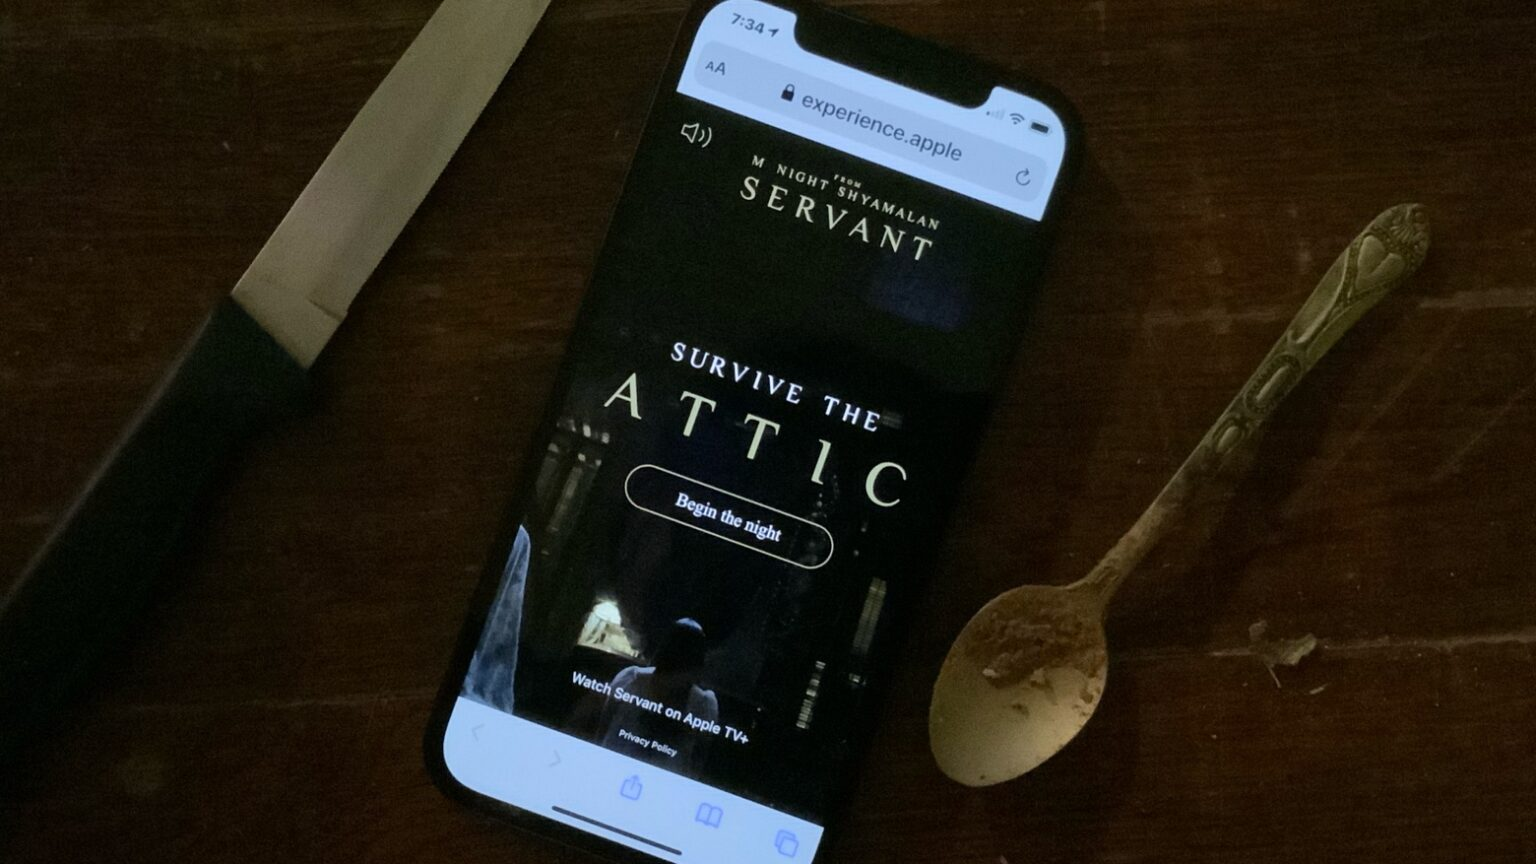 Play 'Escape the Attic' as you wait for the 'Servant' season finale on Apple TV+.